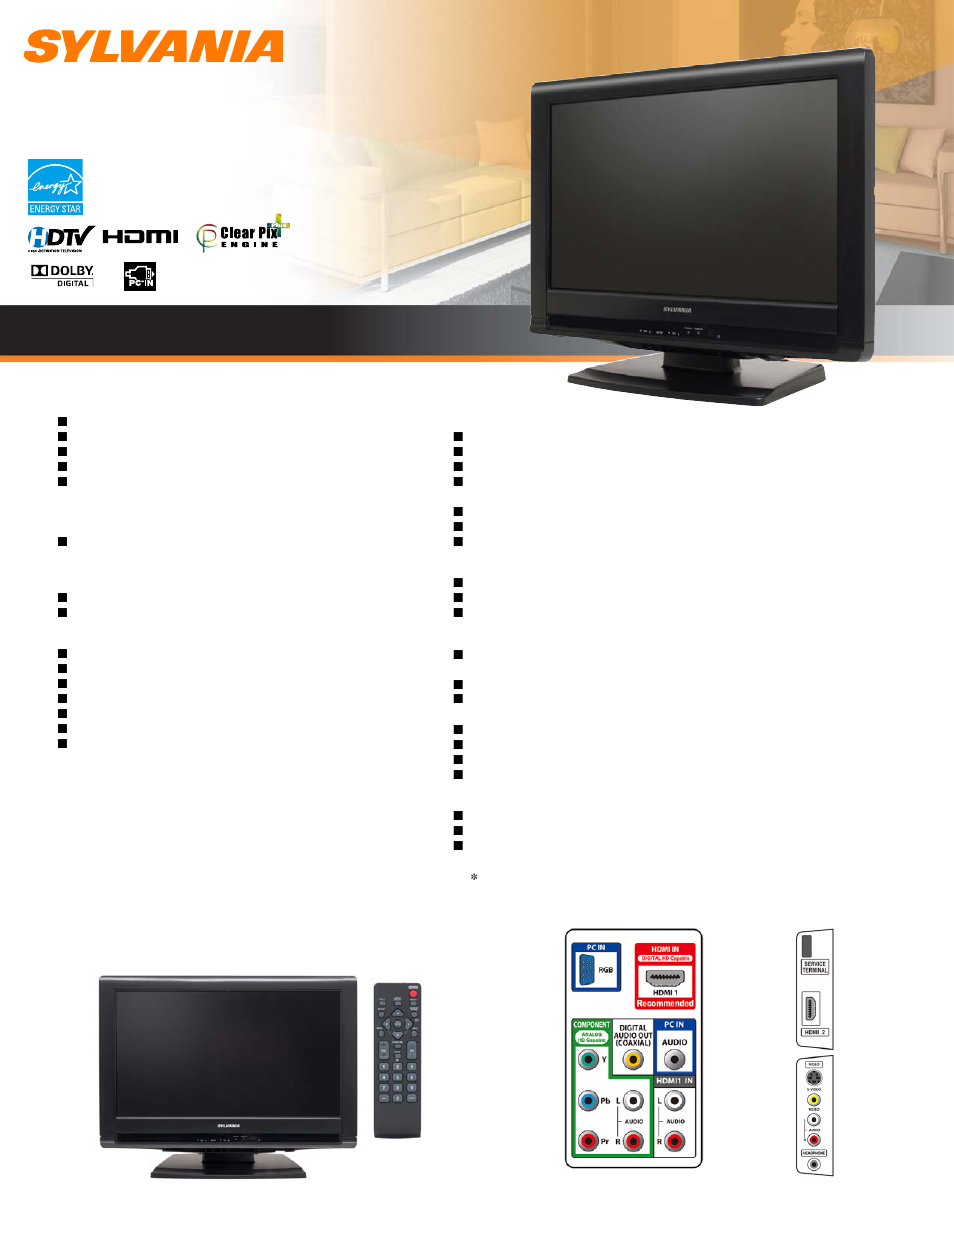 sylvania tv manual various owner manual guide u2022 rh justk co sylvania sp258 user manual sylvania user guide